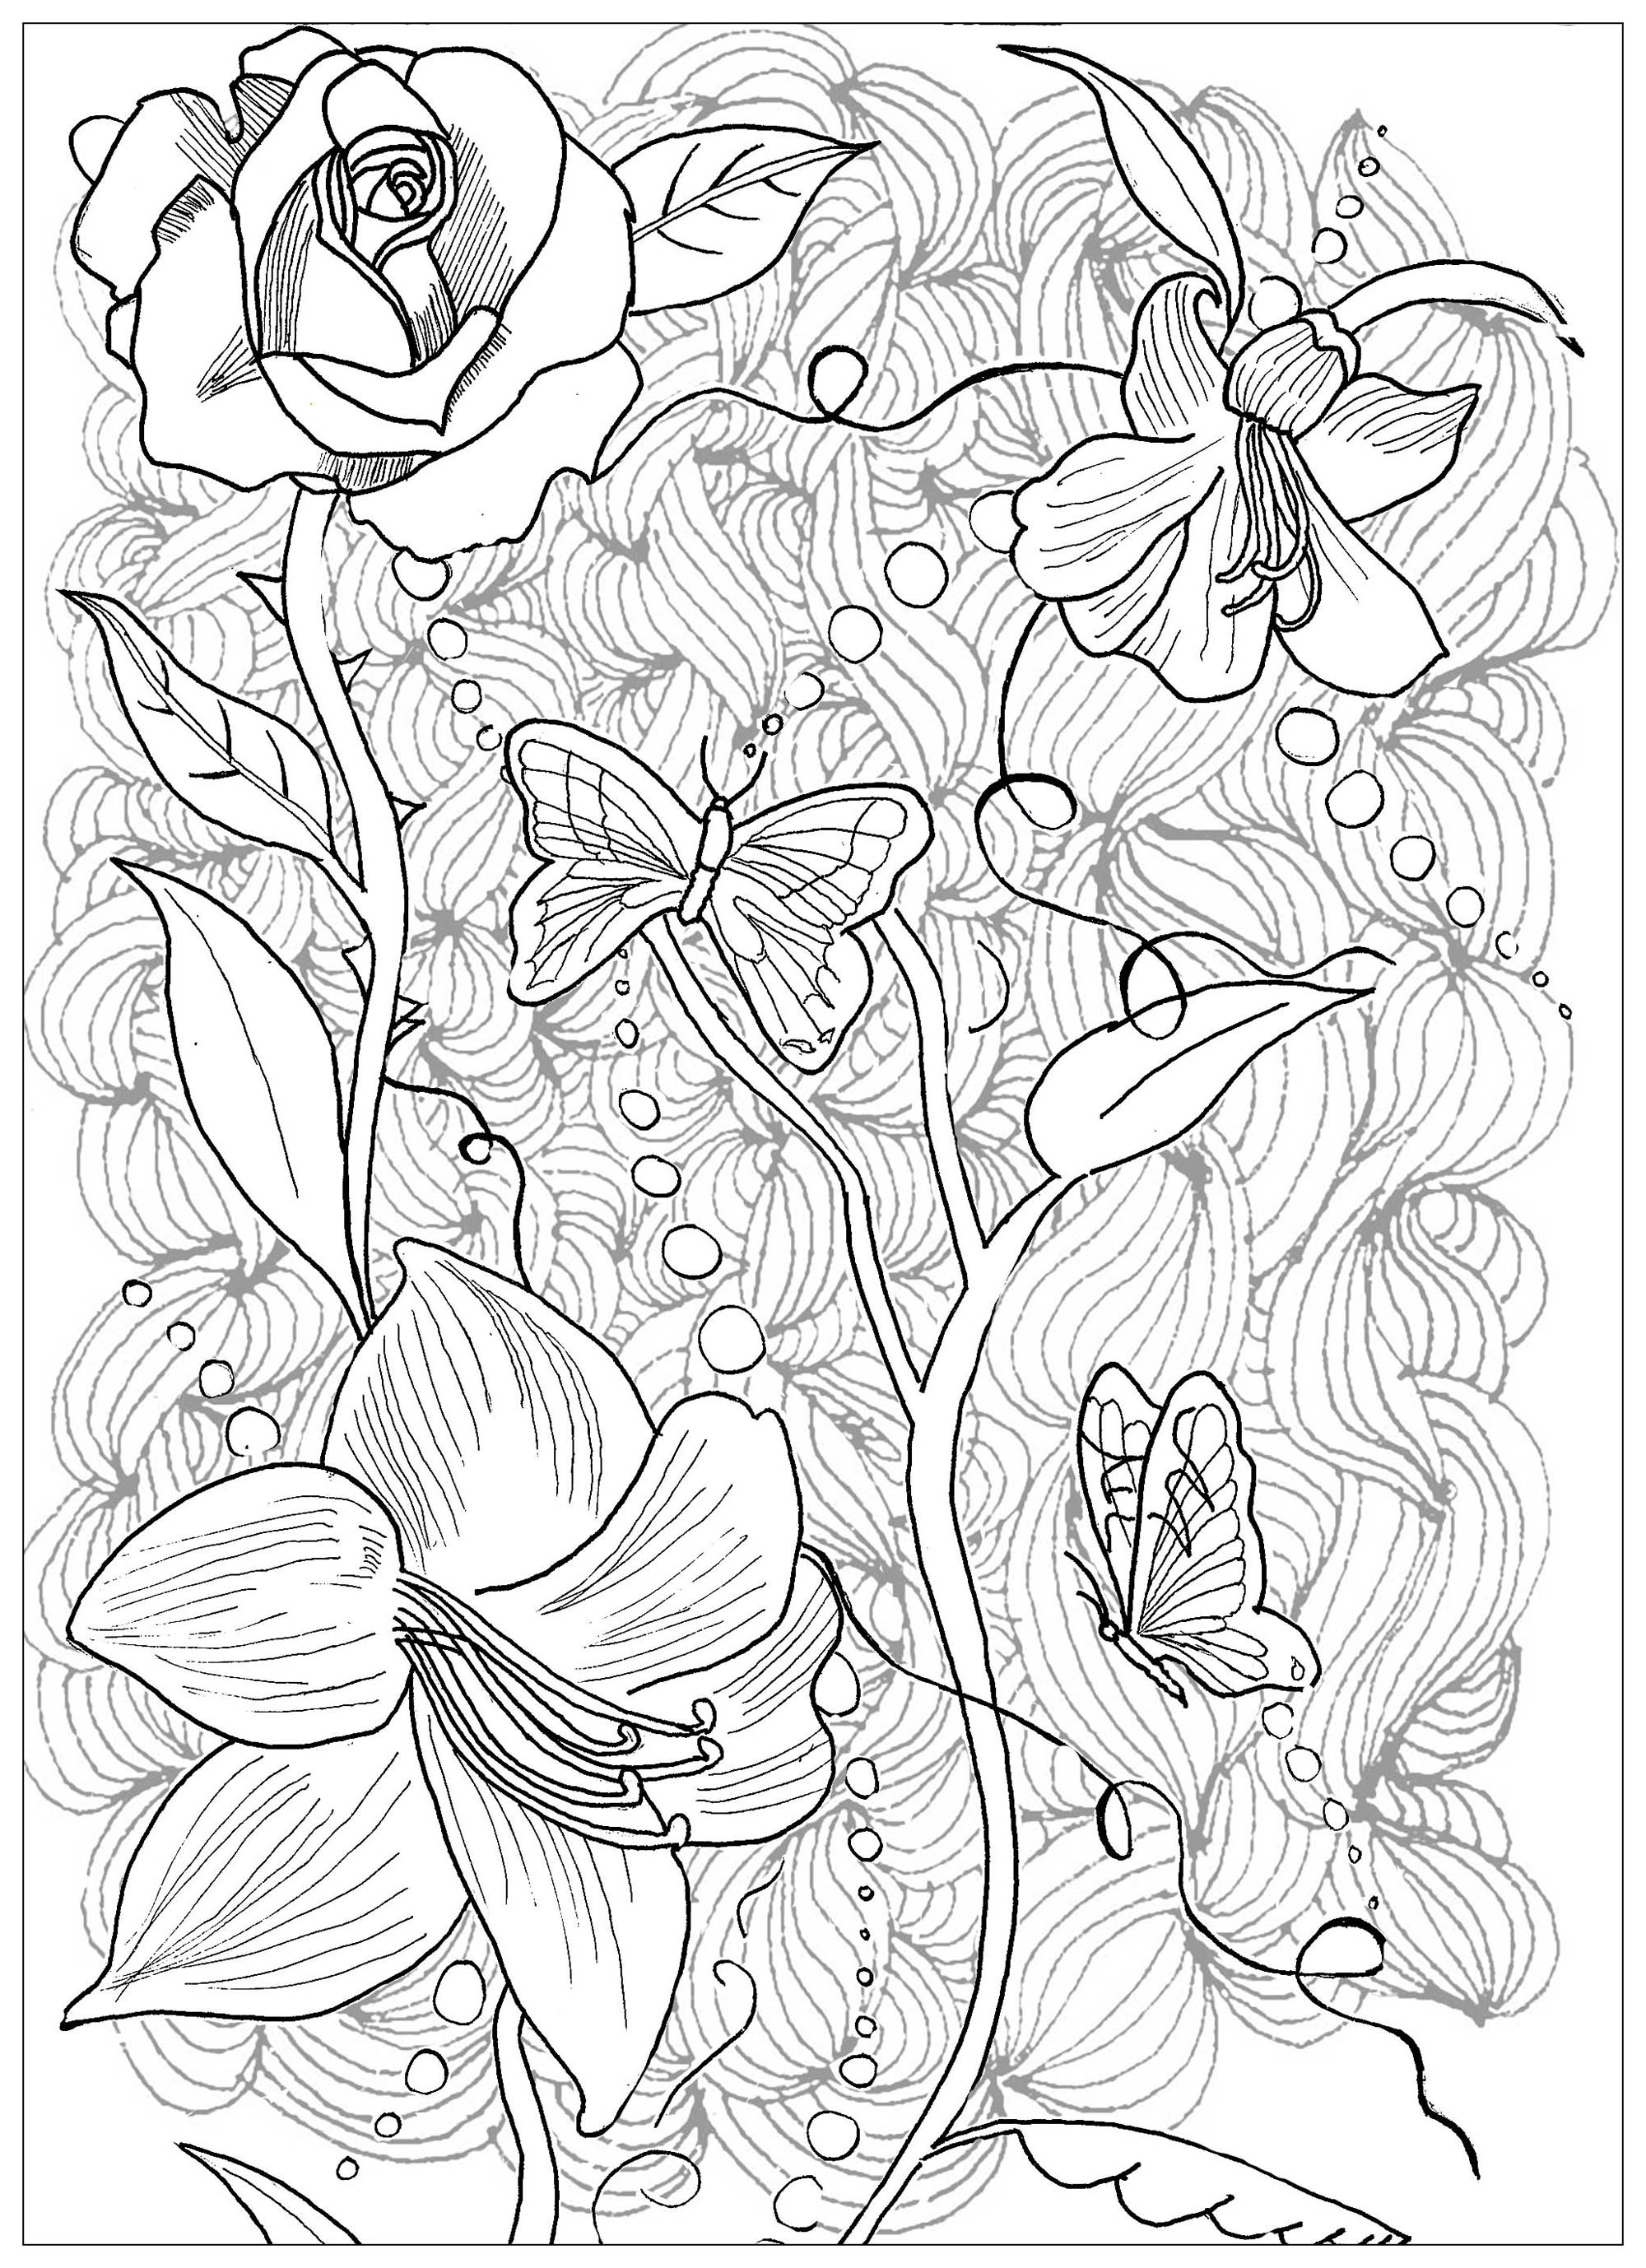 free tattoo coloring pages tattoo coloring pages for adults skull coloring pages coloring free tattoo pages